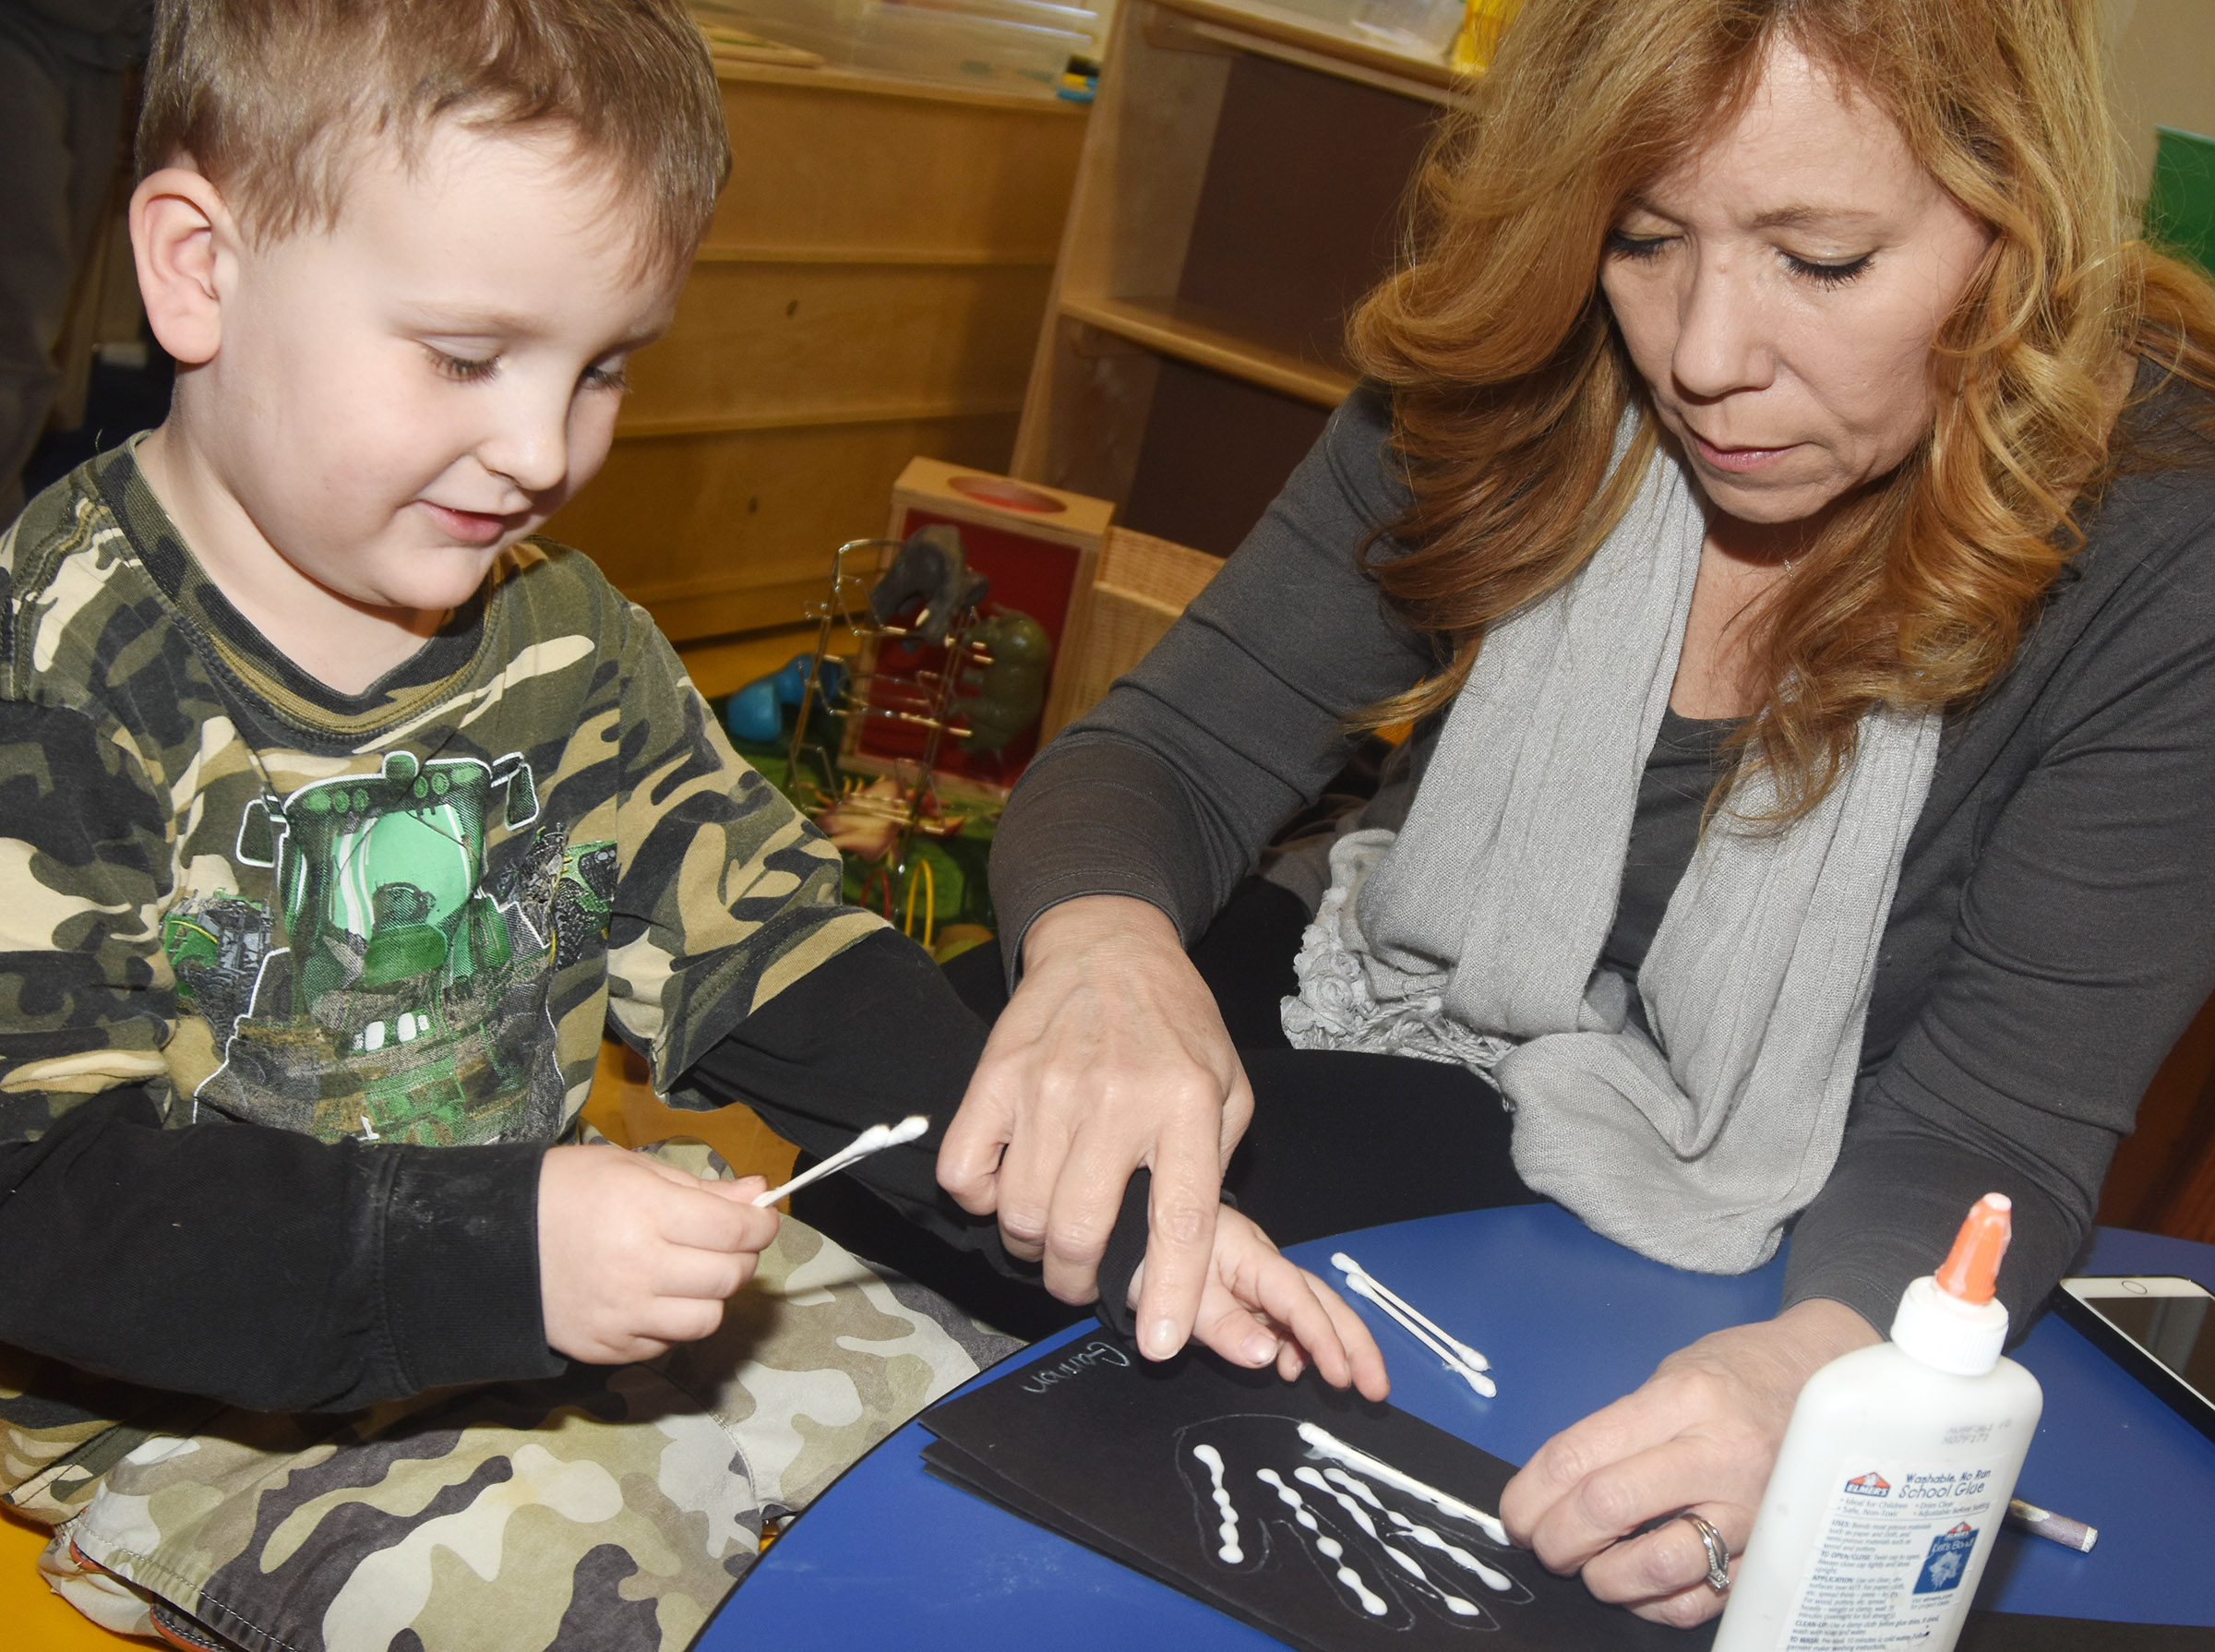 CES preschool substitute Debbie Simmons helps Gannon Scott glue Q-tips on his fingers to make his x-ray.